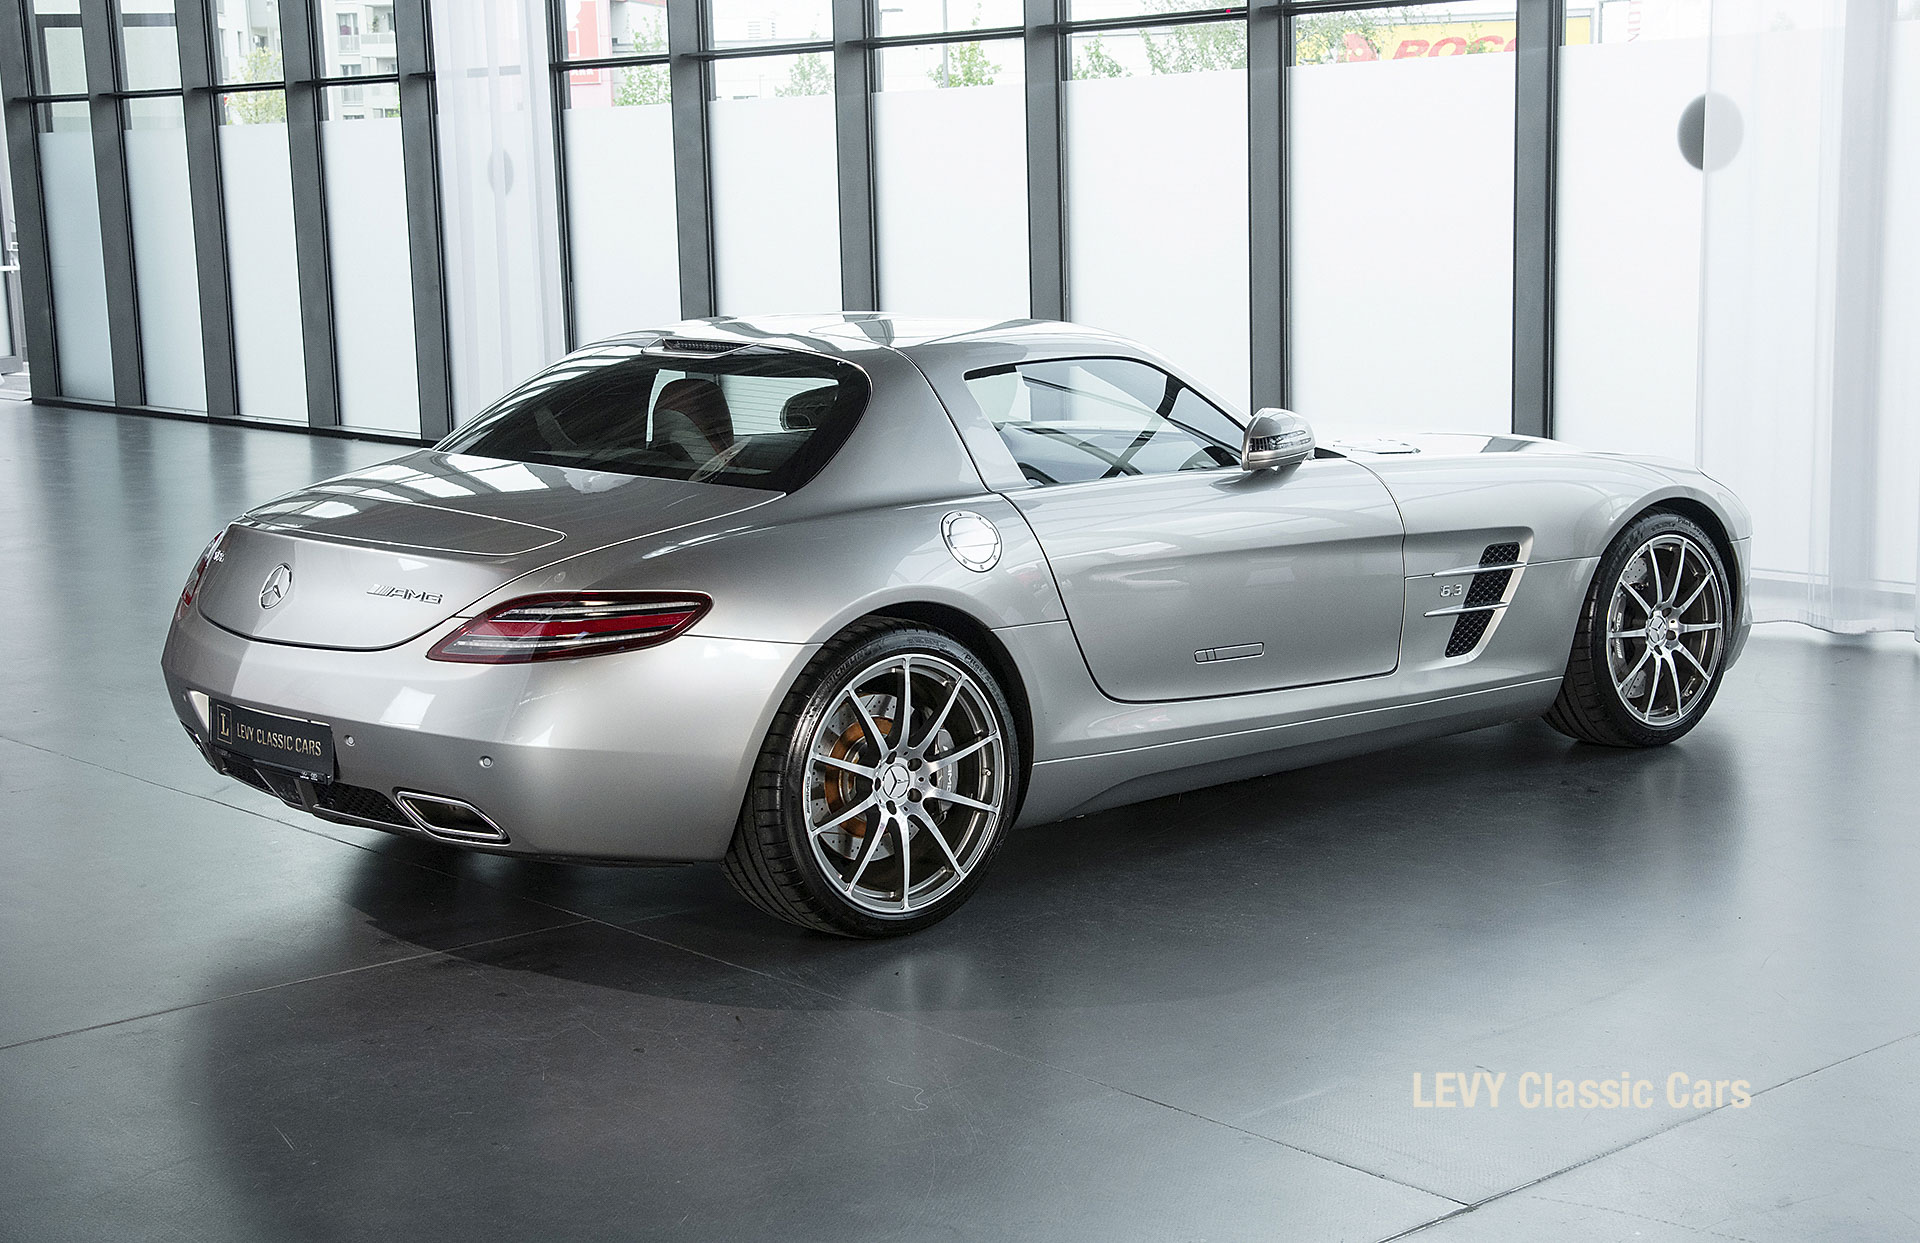 MB SLS AMG 6,3 Coupe 05633 060